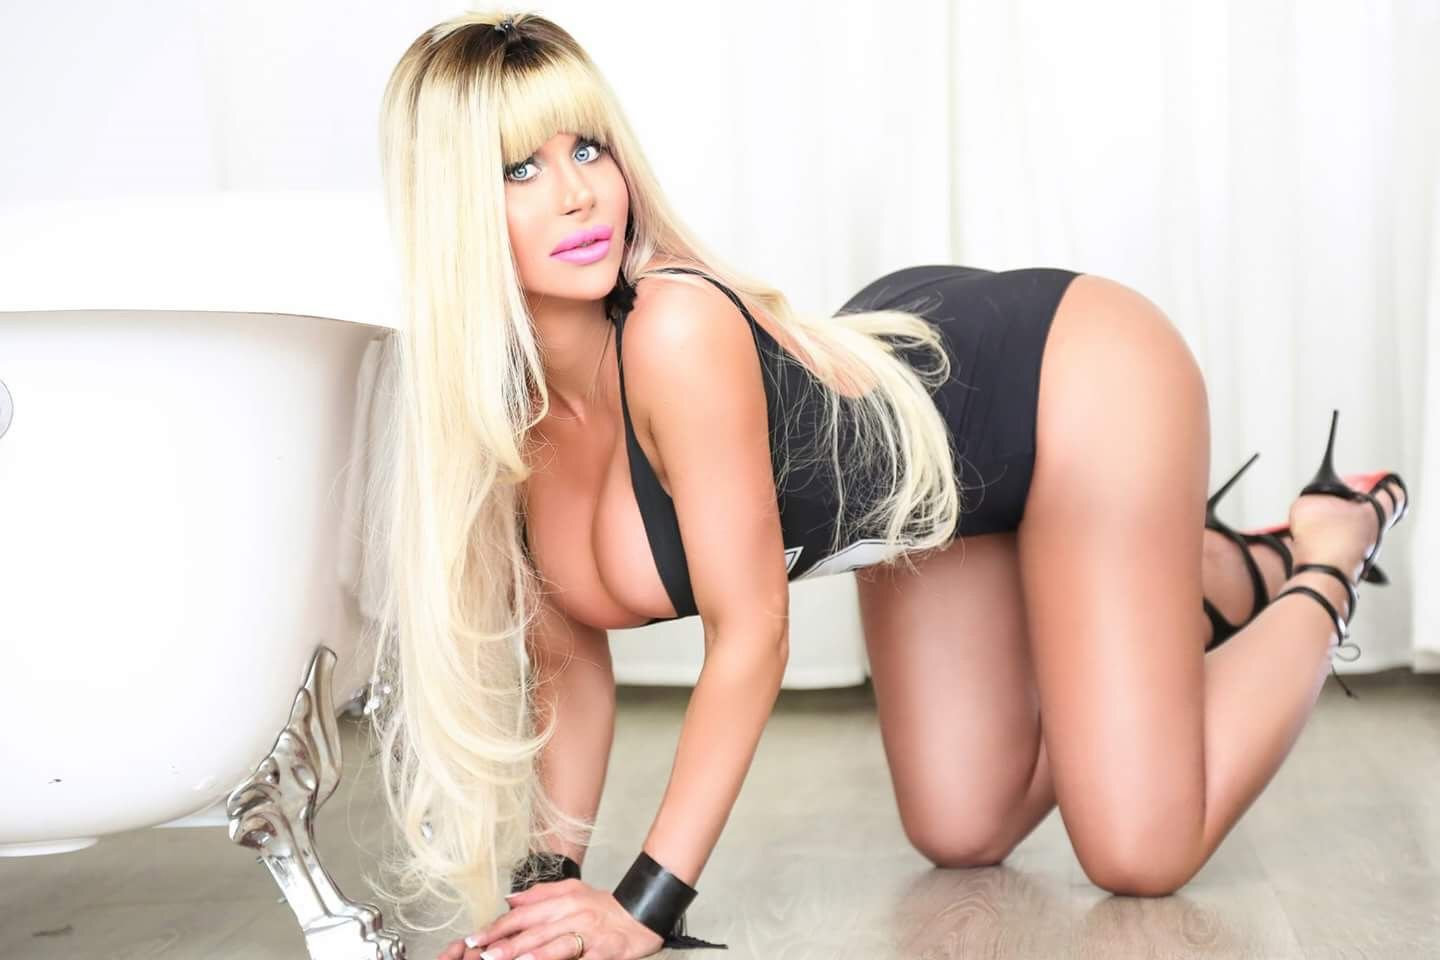 Oslo Tantra Mature Escorts